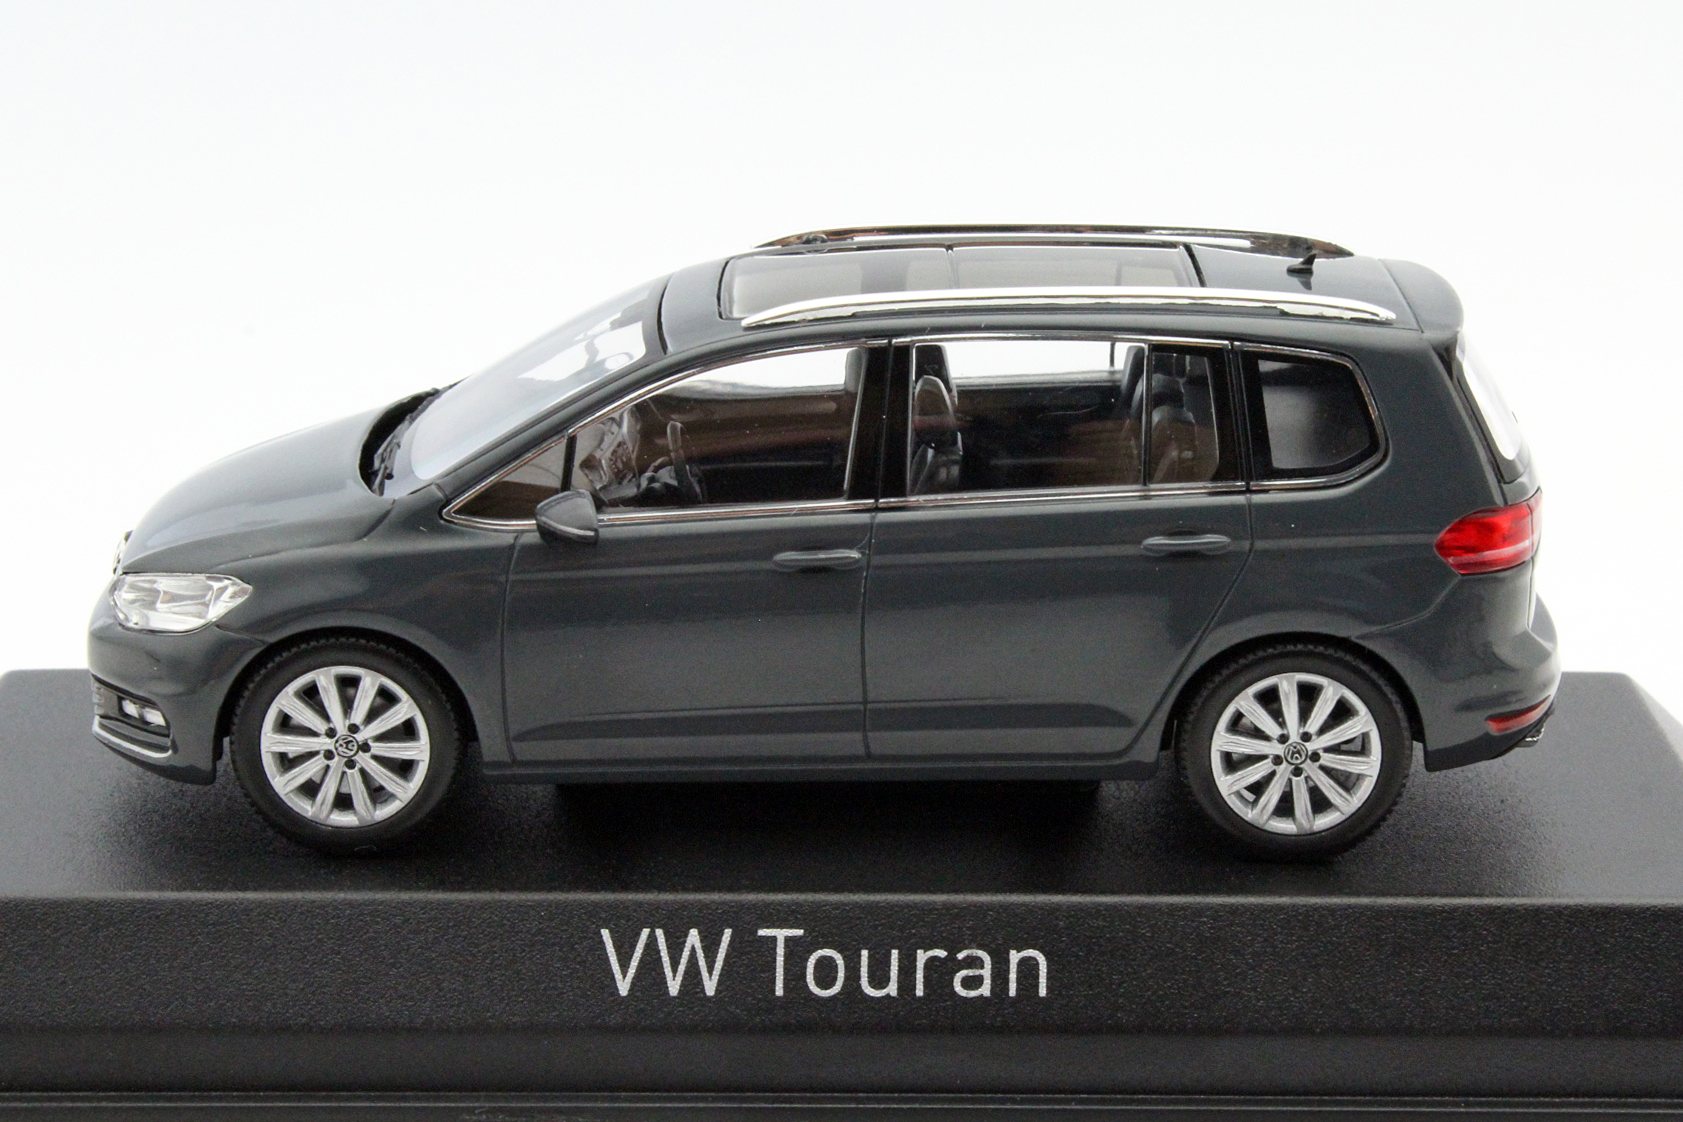 volkswagen touran 2015 grey solid die cast model norev 840028. Black Bedroom Furniture Sets. Home Design Ideas